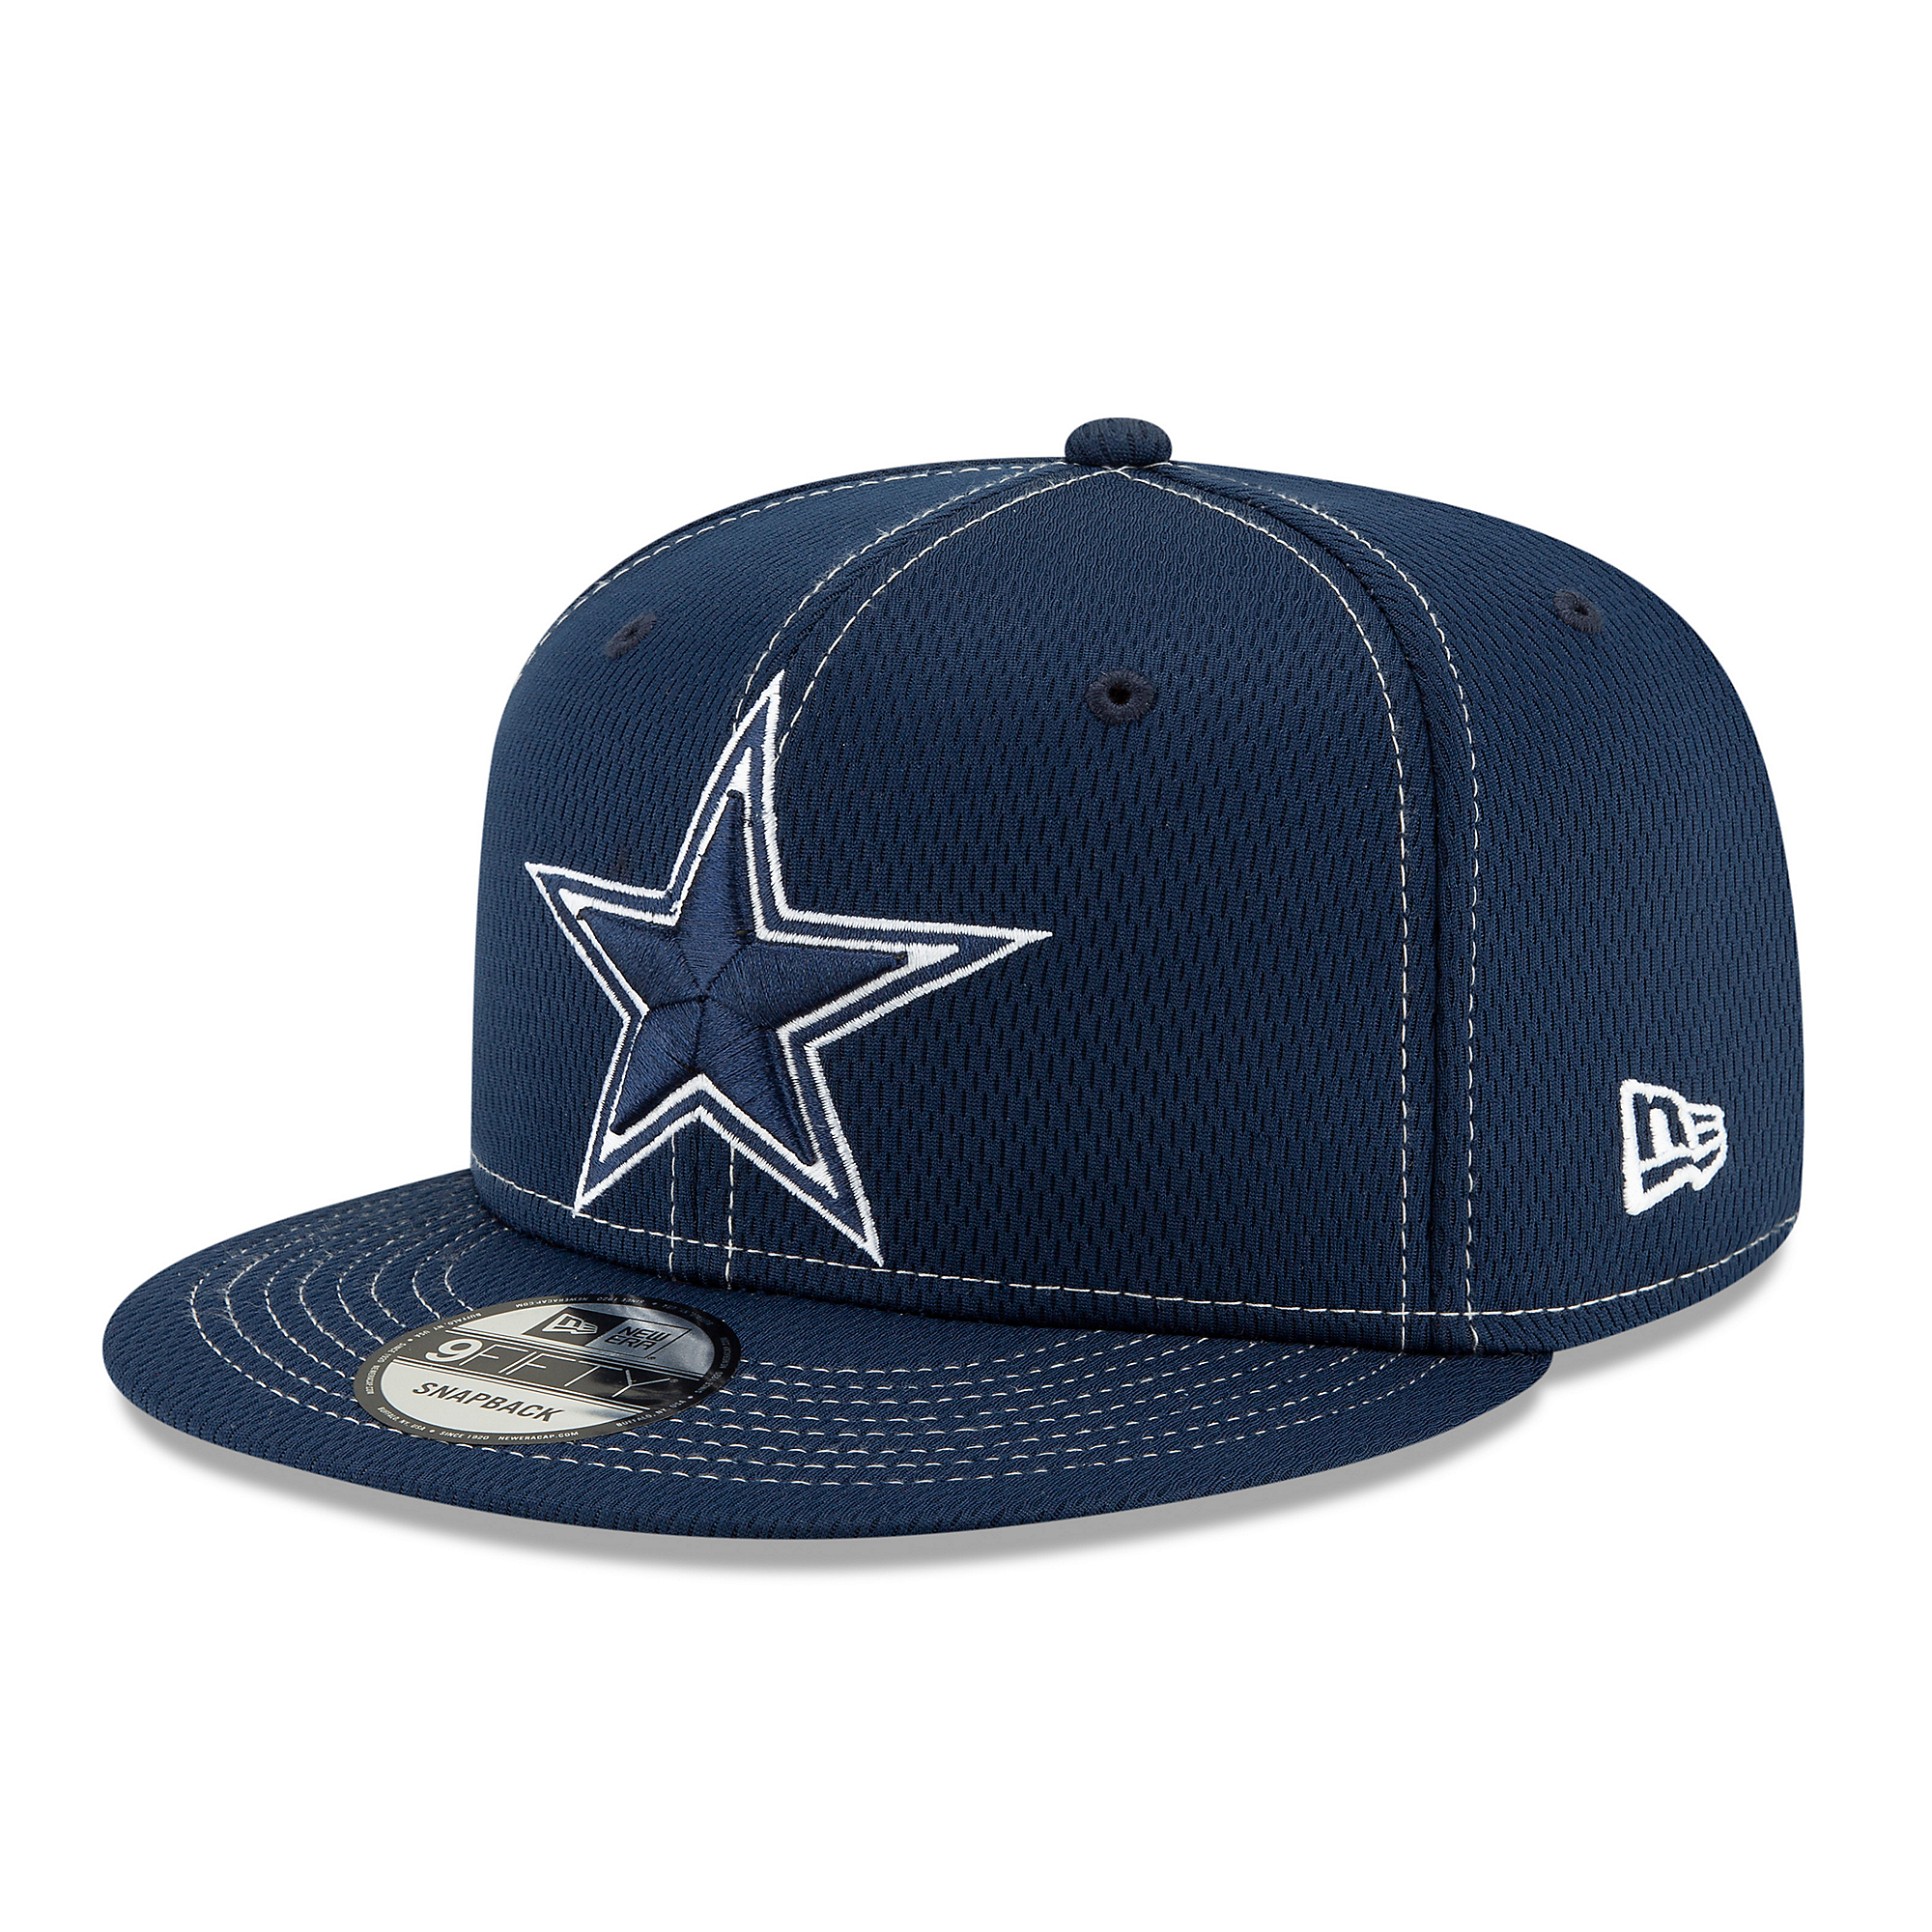 Dallas Cowboys New Era Mens Navy On-Field Sideline Road 9Fifty Cap